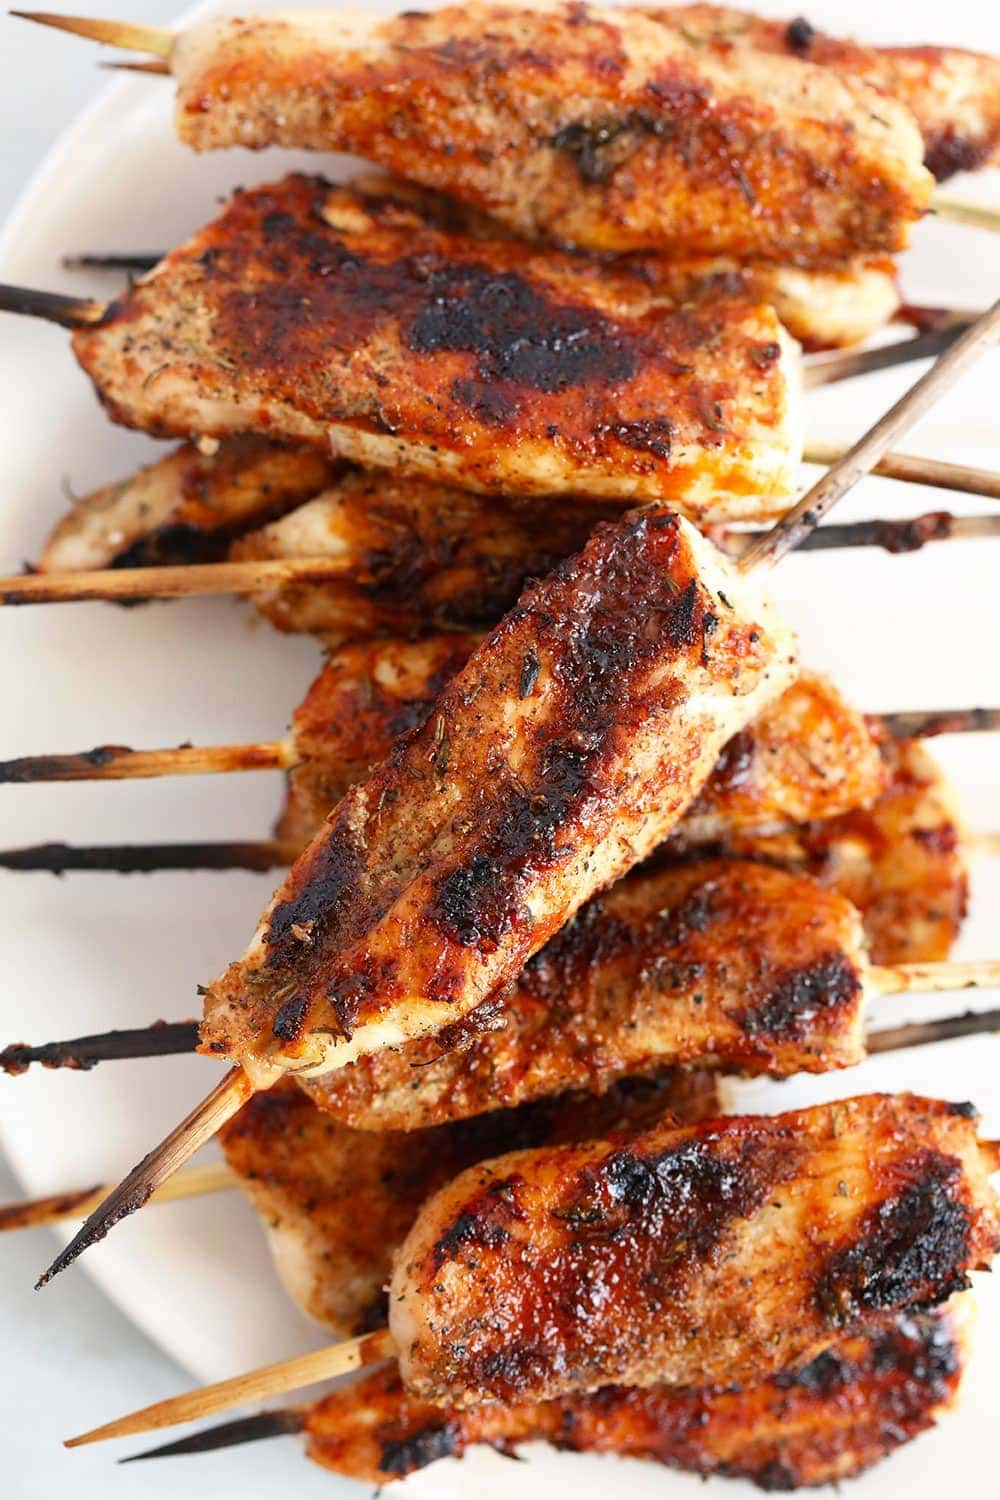 Grilled chicken skewers on a plate